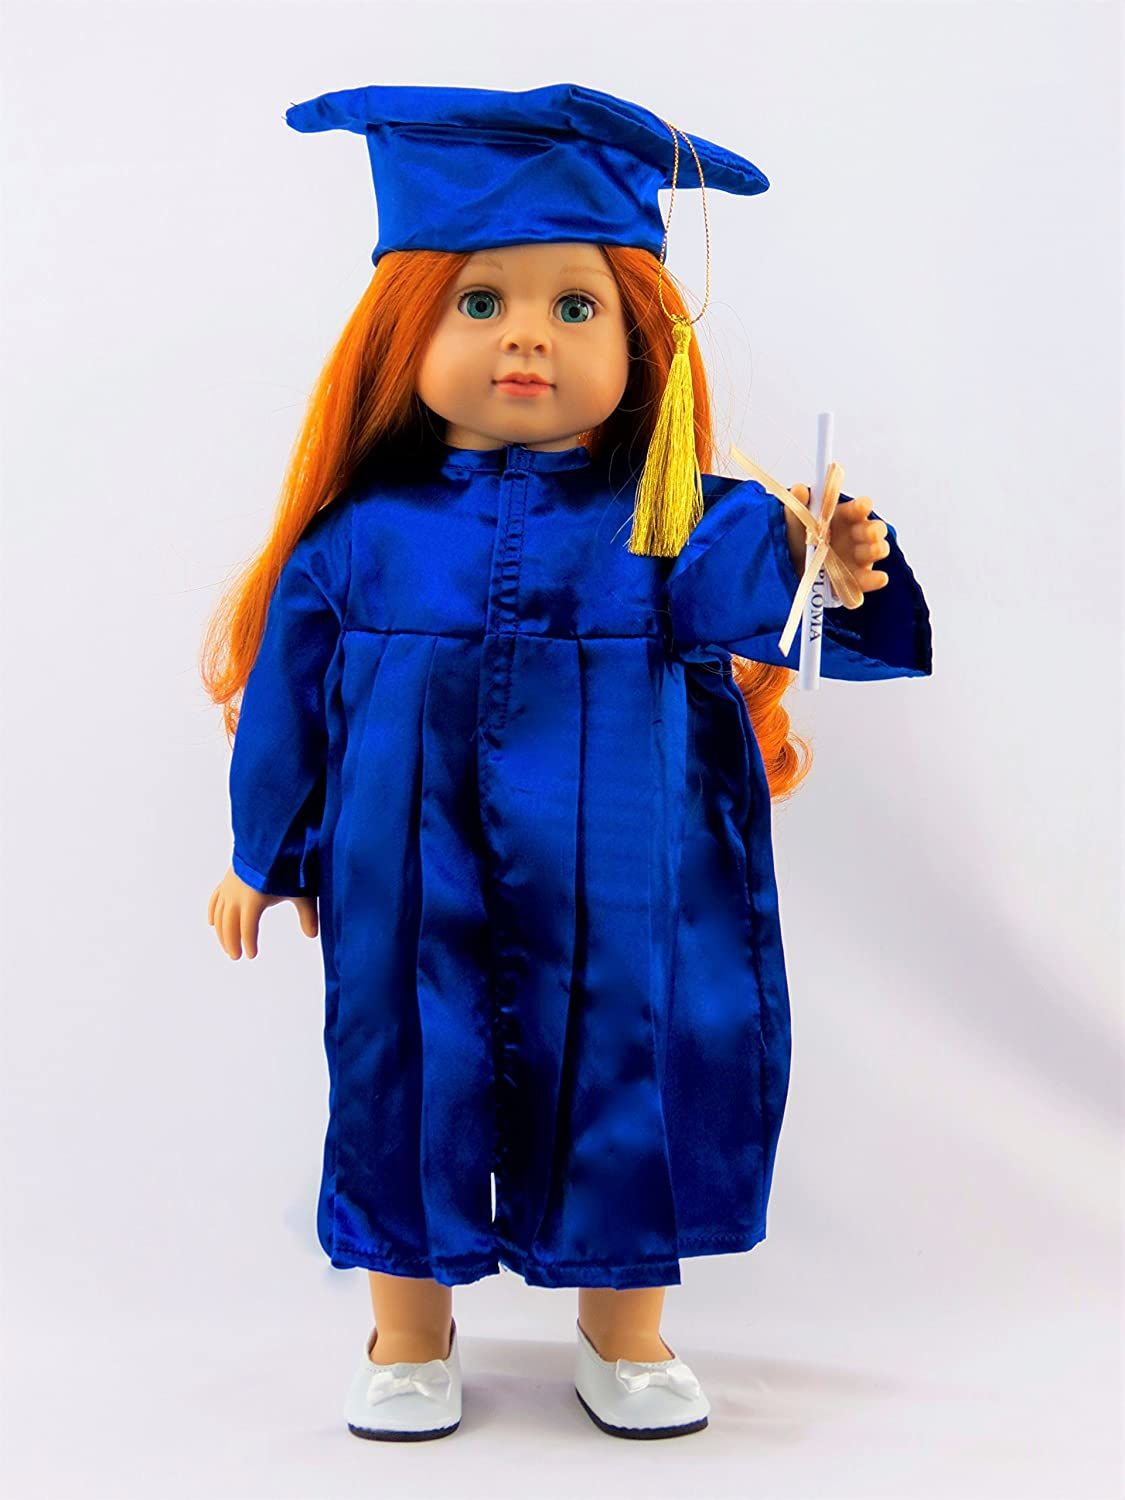 Amazon.com: Blue Graduation Cap, Gown, and Diploma -Fits 18 ...